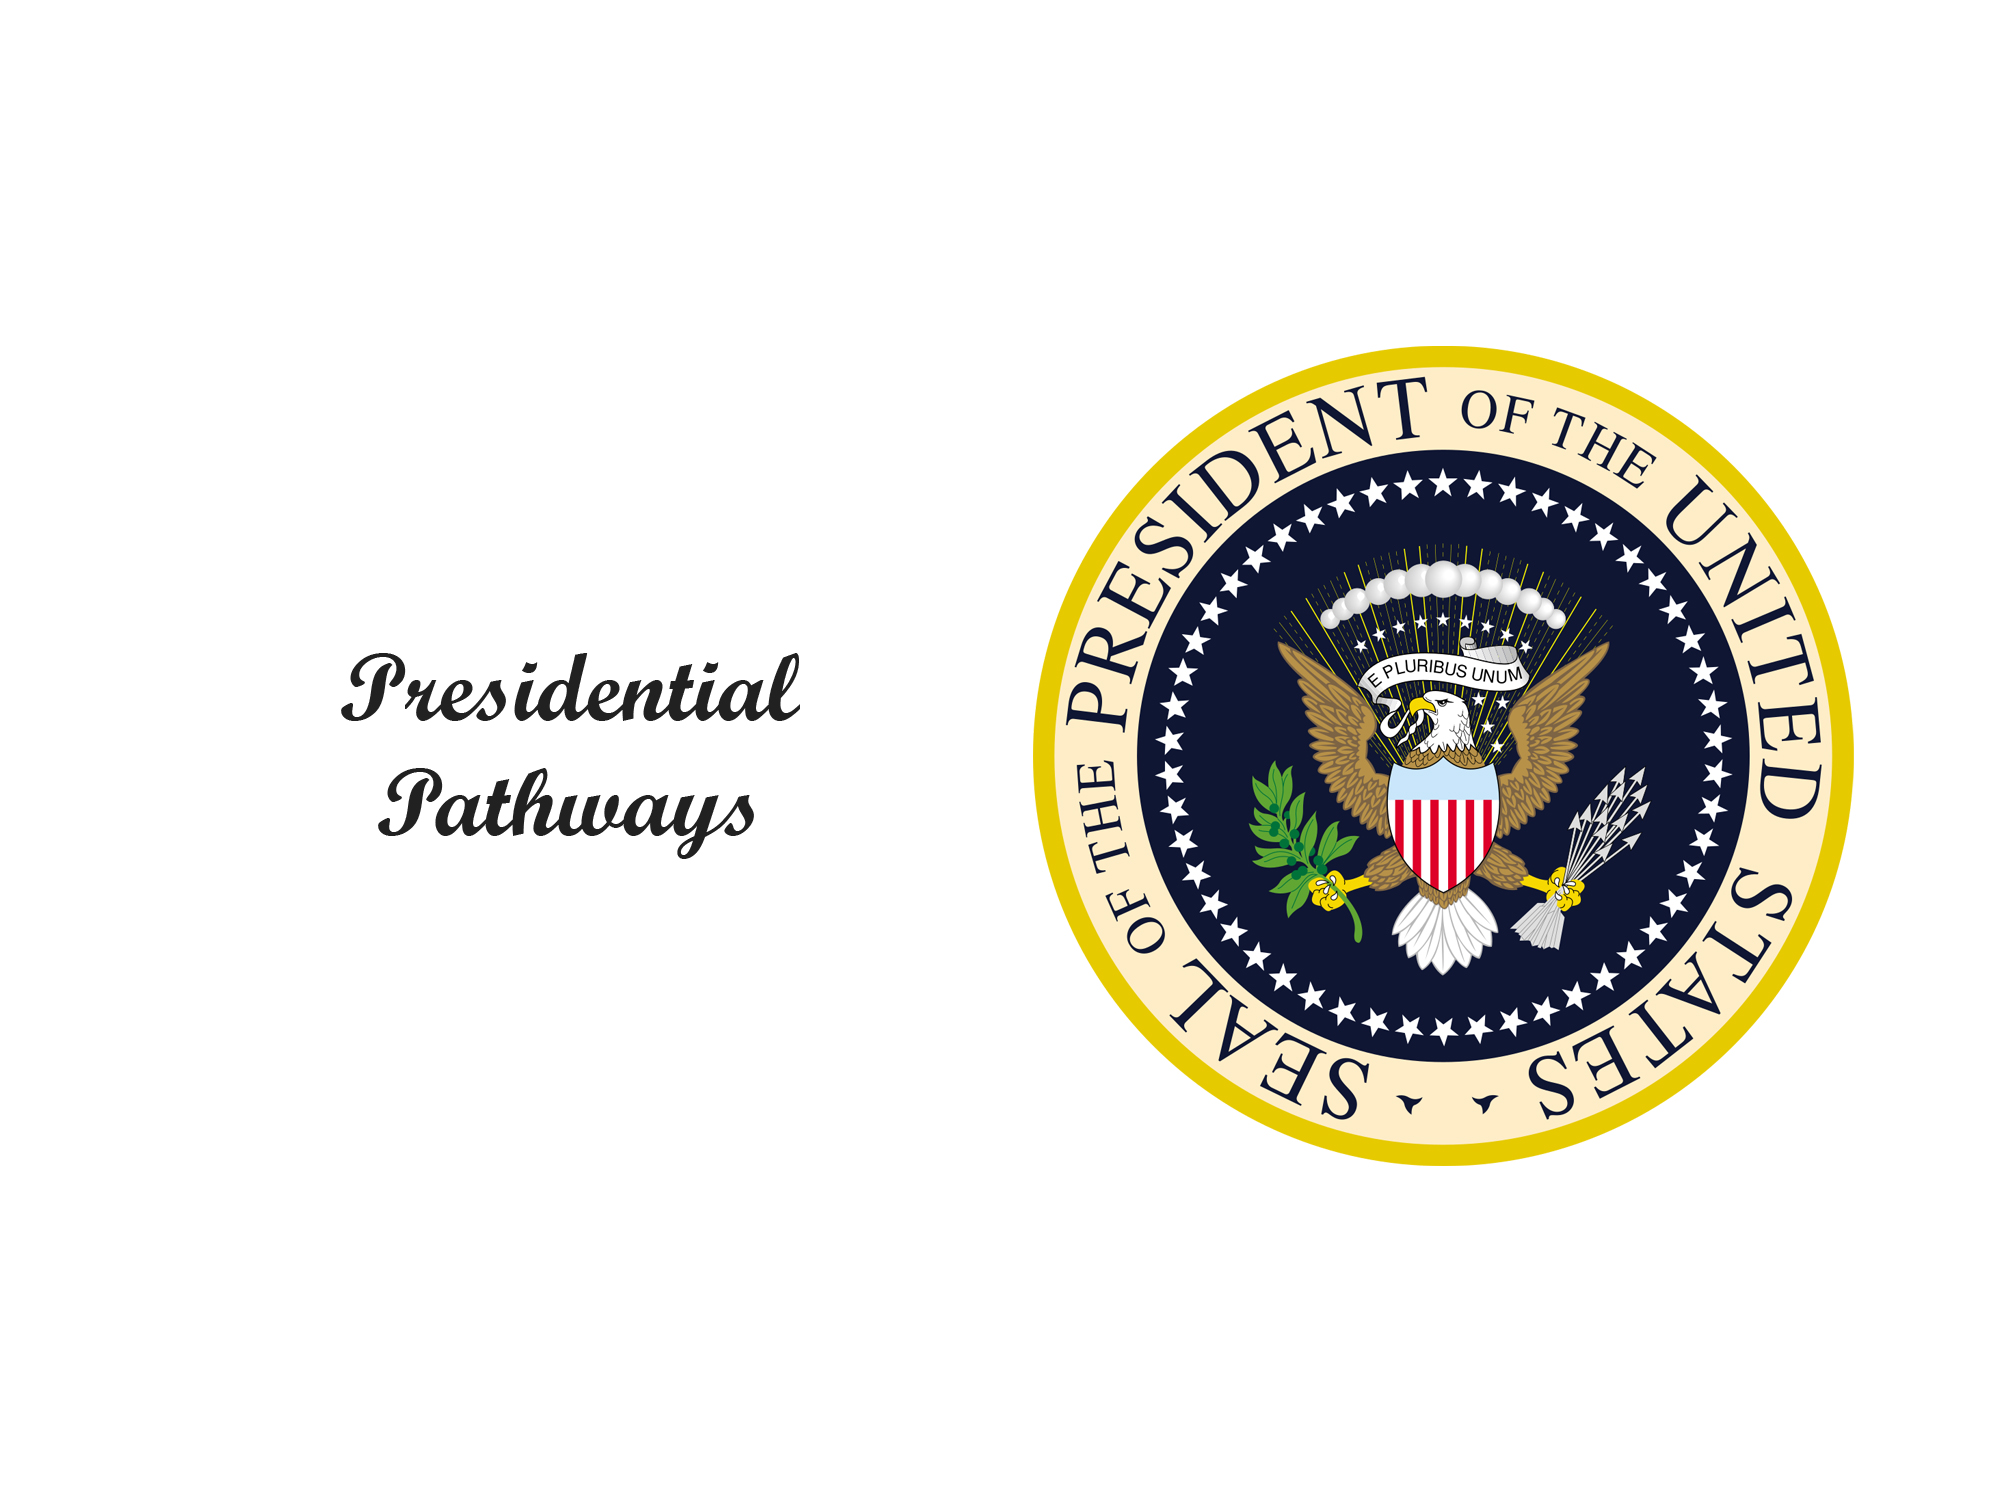 "Text on the left says ""Presidential Pathways"" next to the seal of the president of the United States of America on the right."